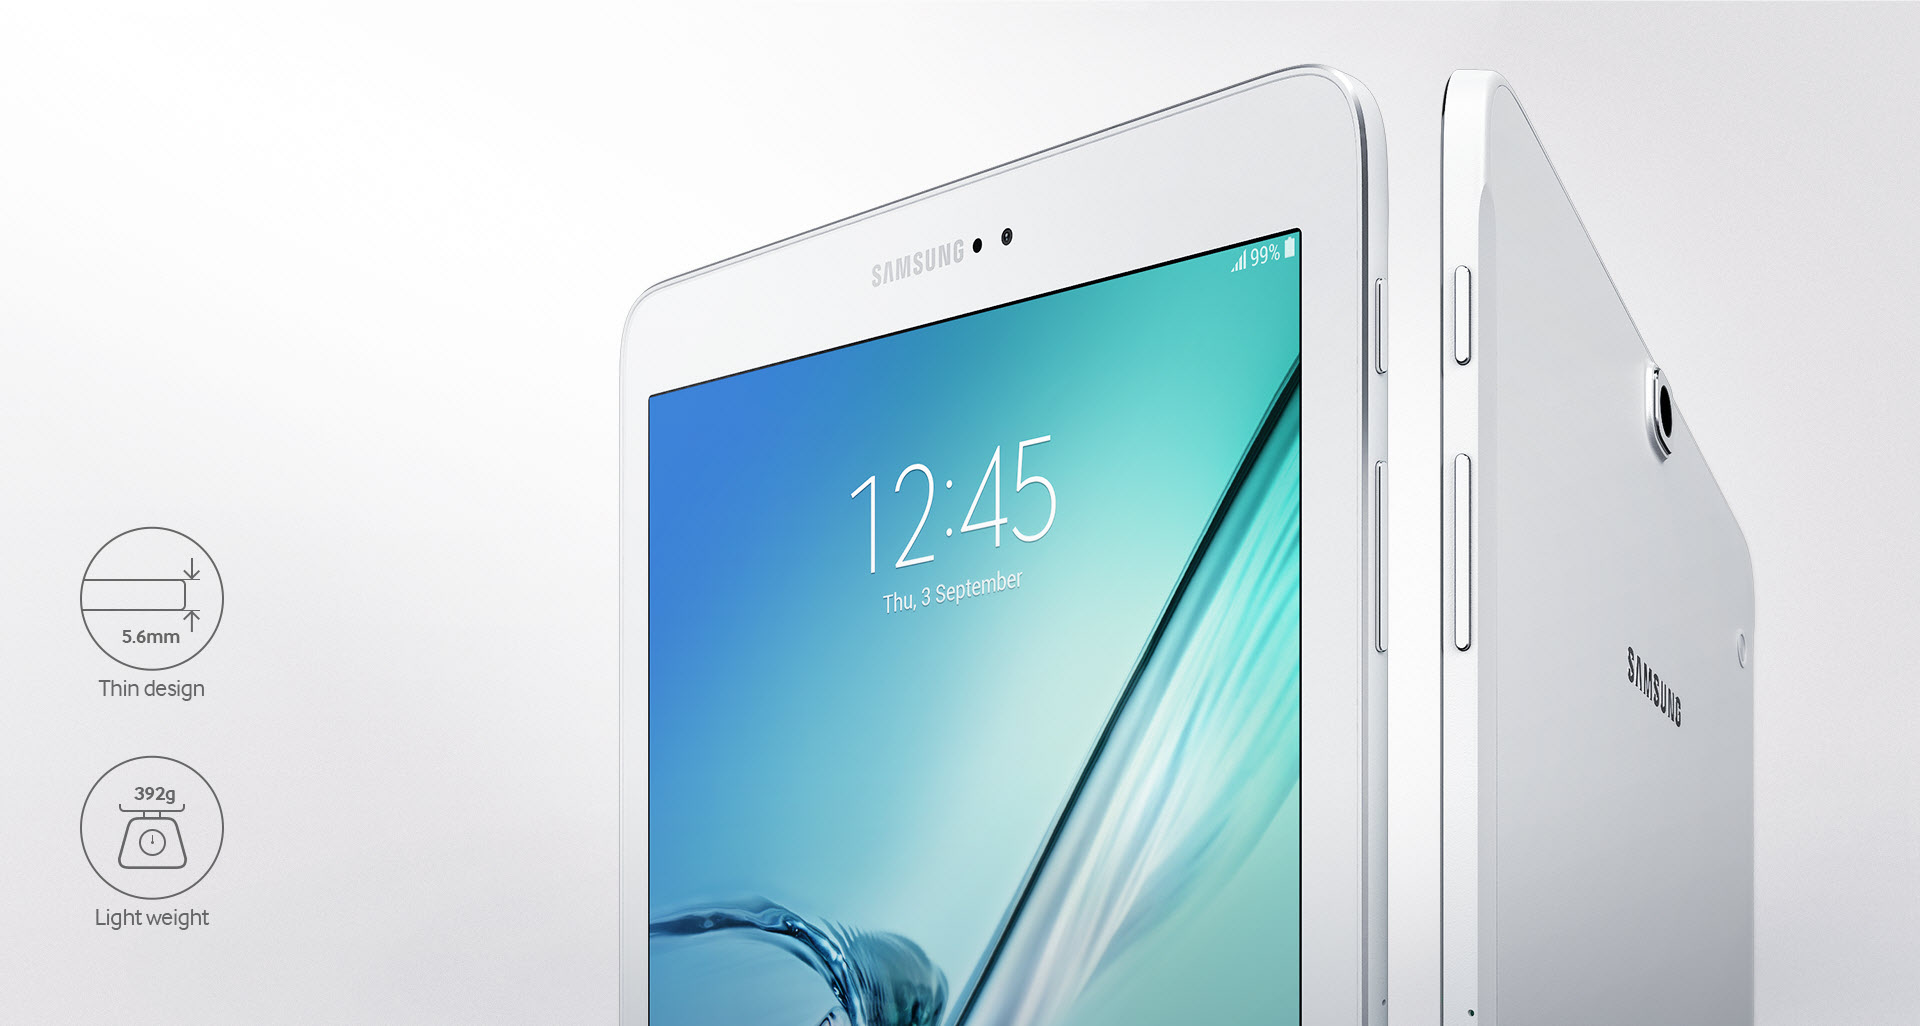 How to root Samsung Galaxy Tab S2 SM-T810 on Android 5 1 1 Lollipop